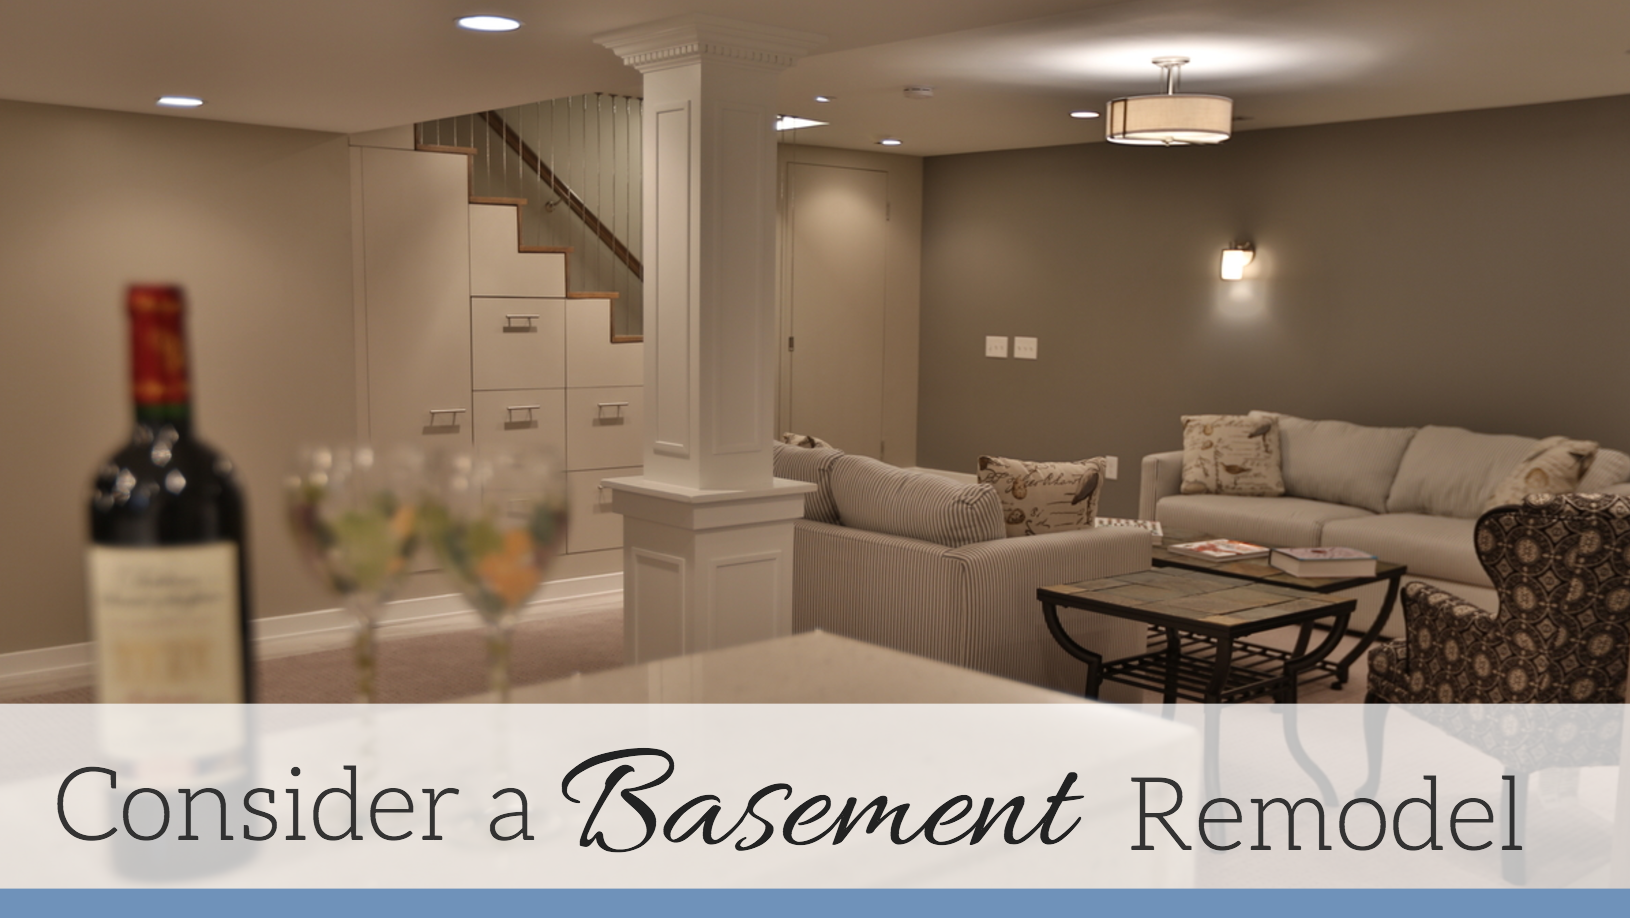 Basement Remodel Blog | Tilghman Builders